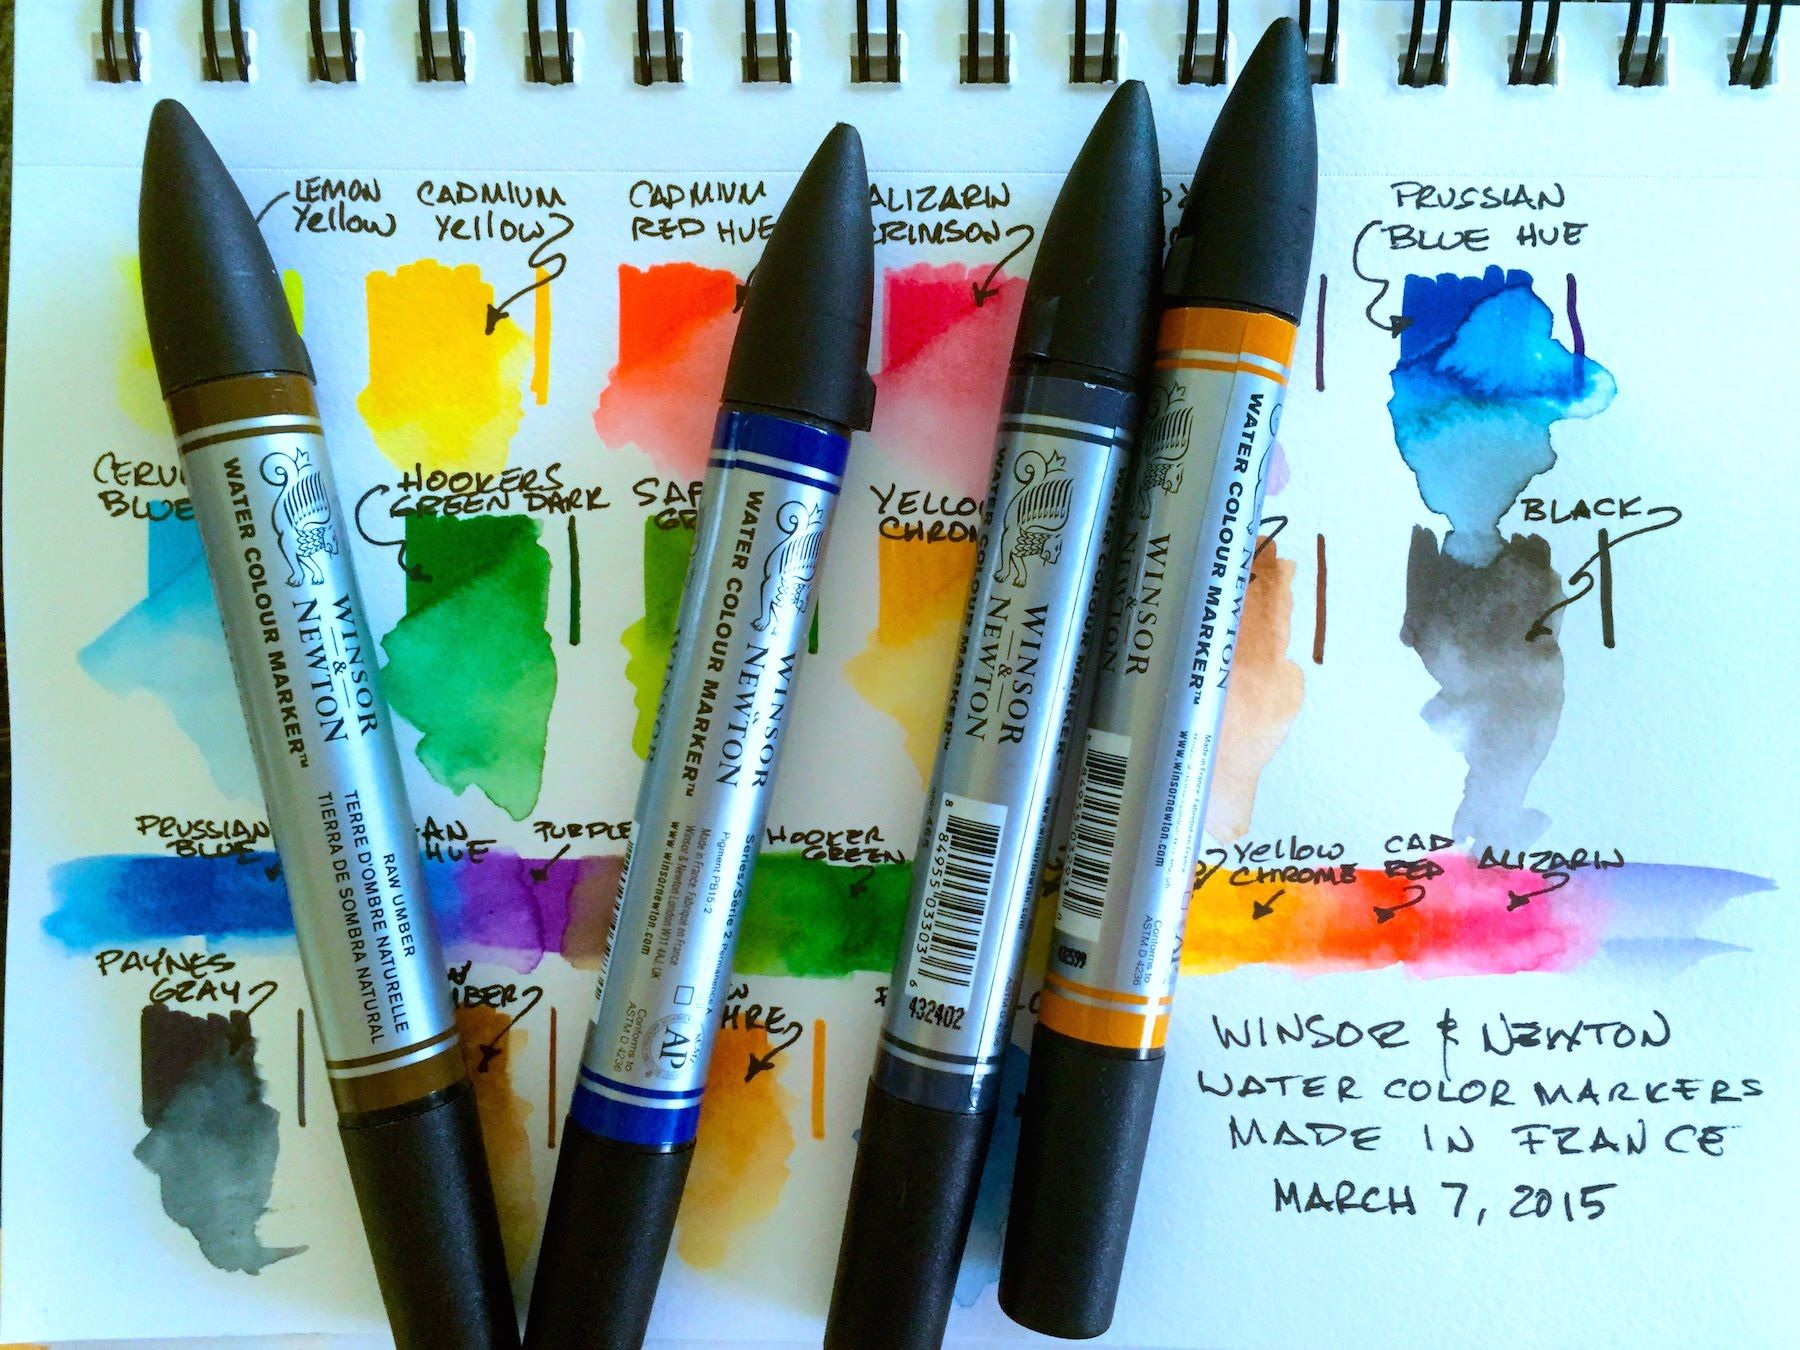 Winsor Newton Watercolor Markers Tutoriels Aquarelles